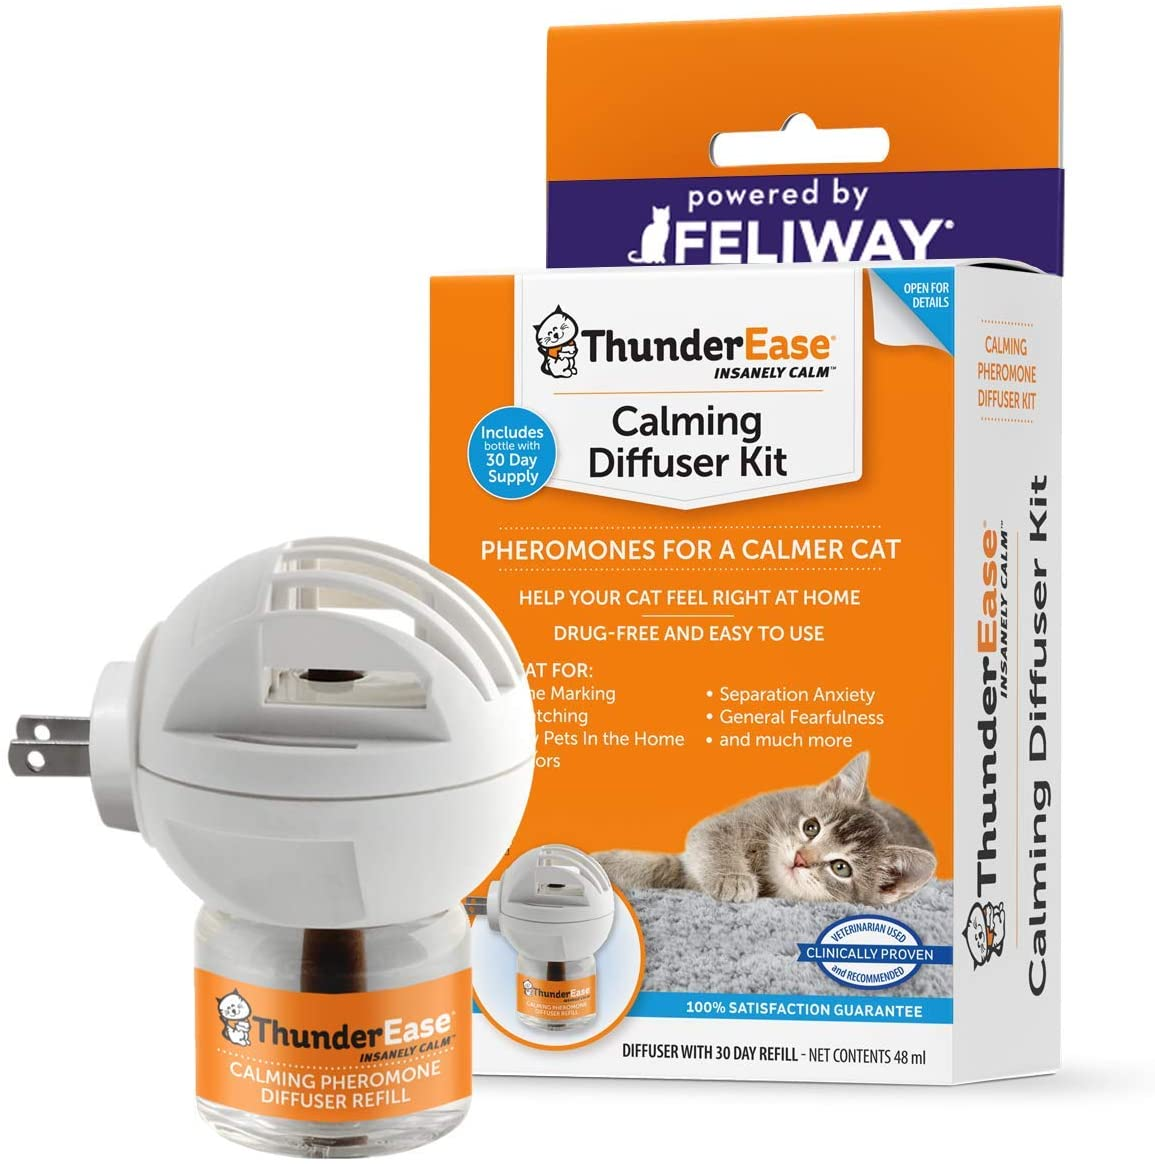 ThunderEase Cat Calming Pheromone Diffuser Kit | Powered by FELIWAY | Reduce Scratching, Urine Spraying, Marking and Anxiety